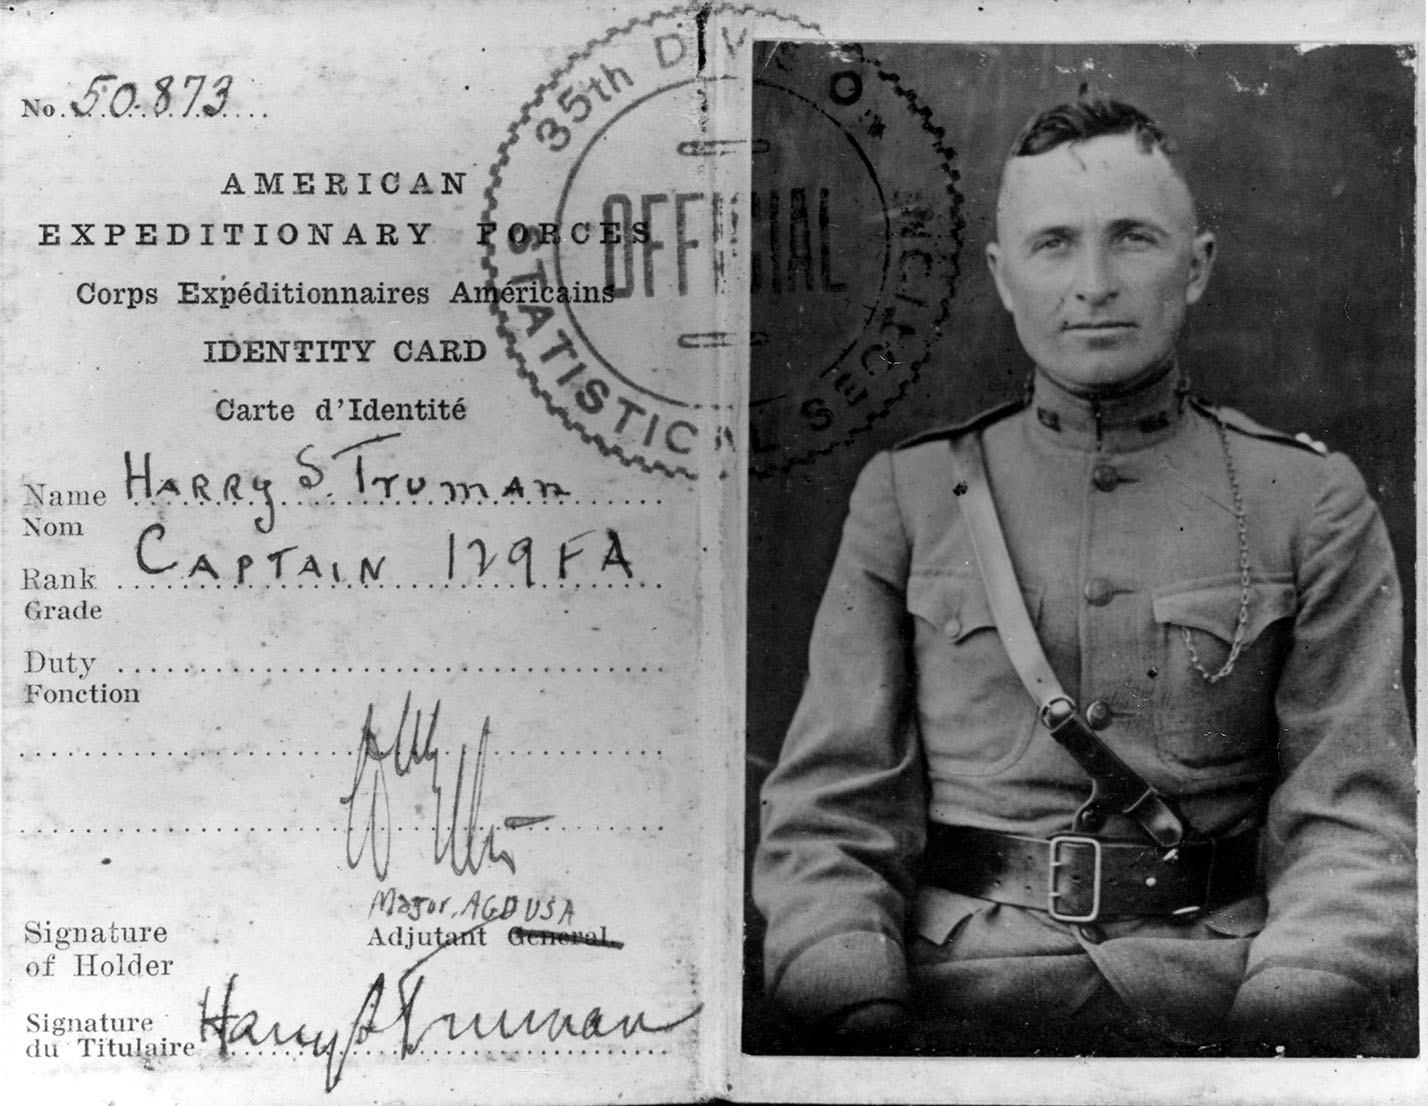 HST's #WWI military id card. No glasses! Was afraid they wouldn't let him in b/c of eyesight, so he memorized the eye exam chart. https://t.co/aJ1yLCpsqL